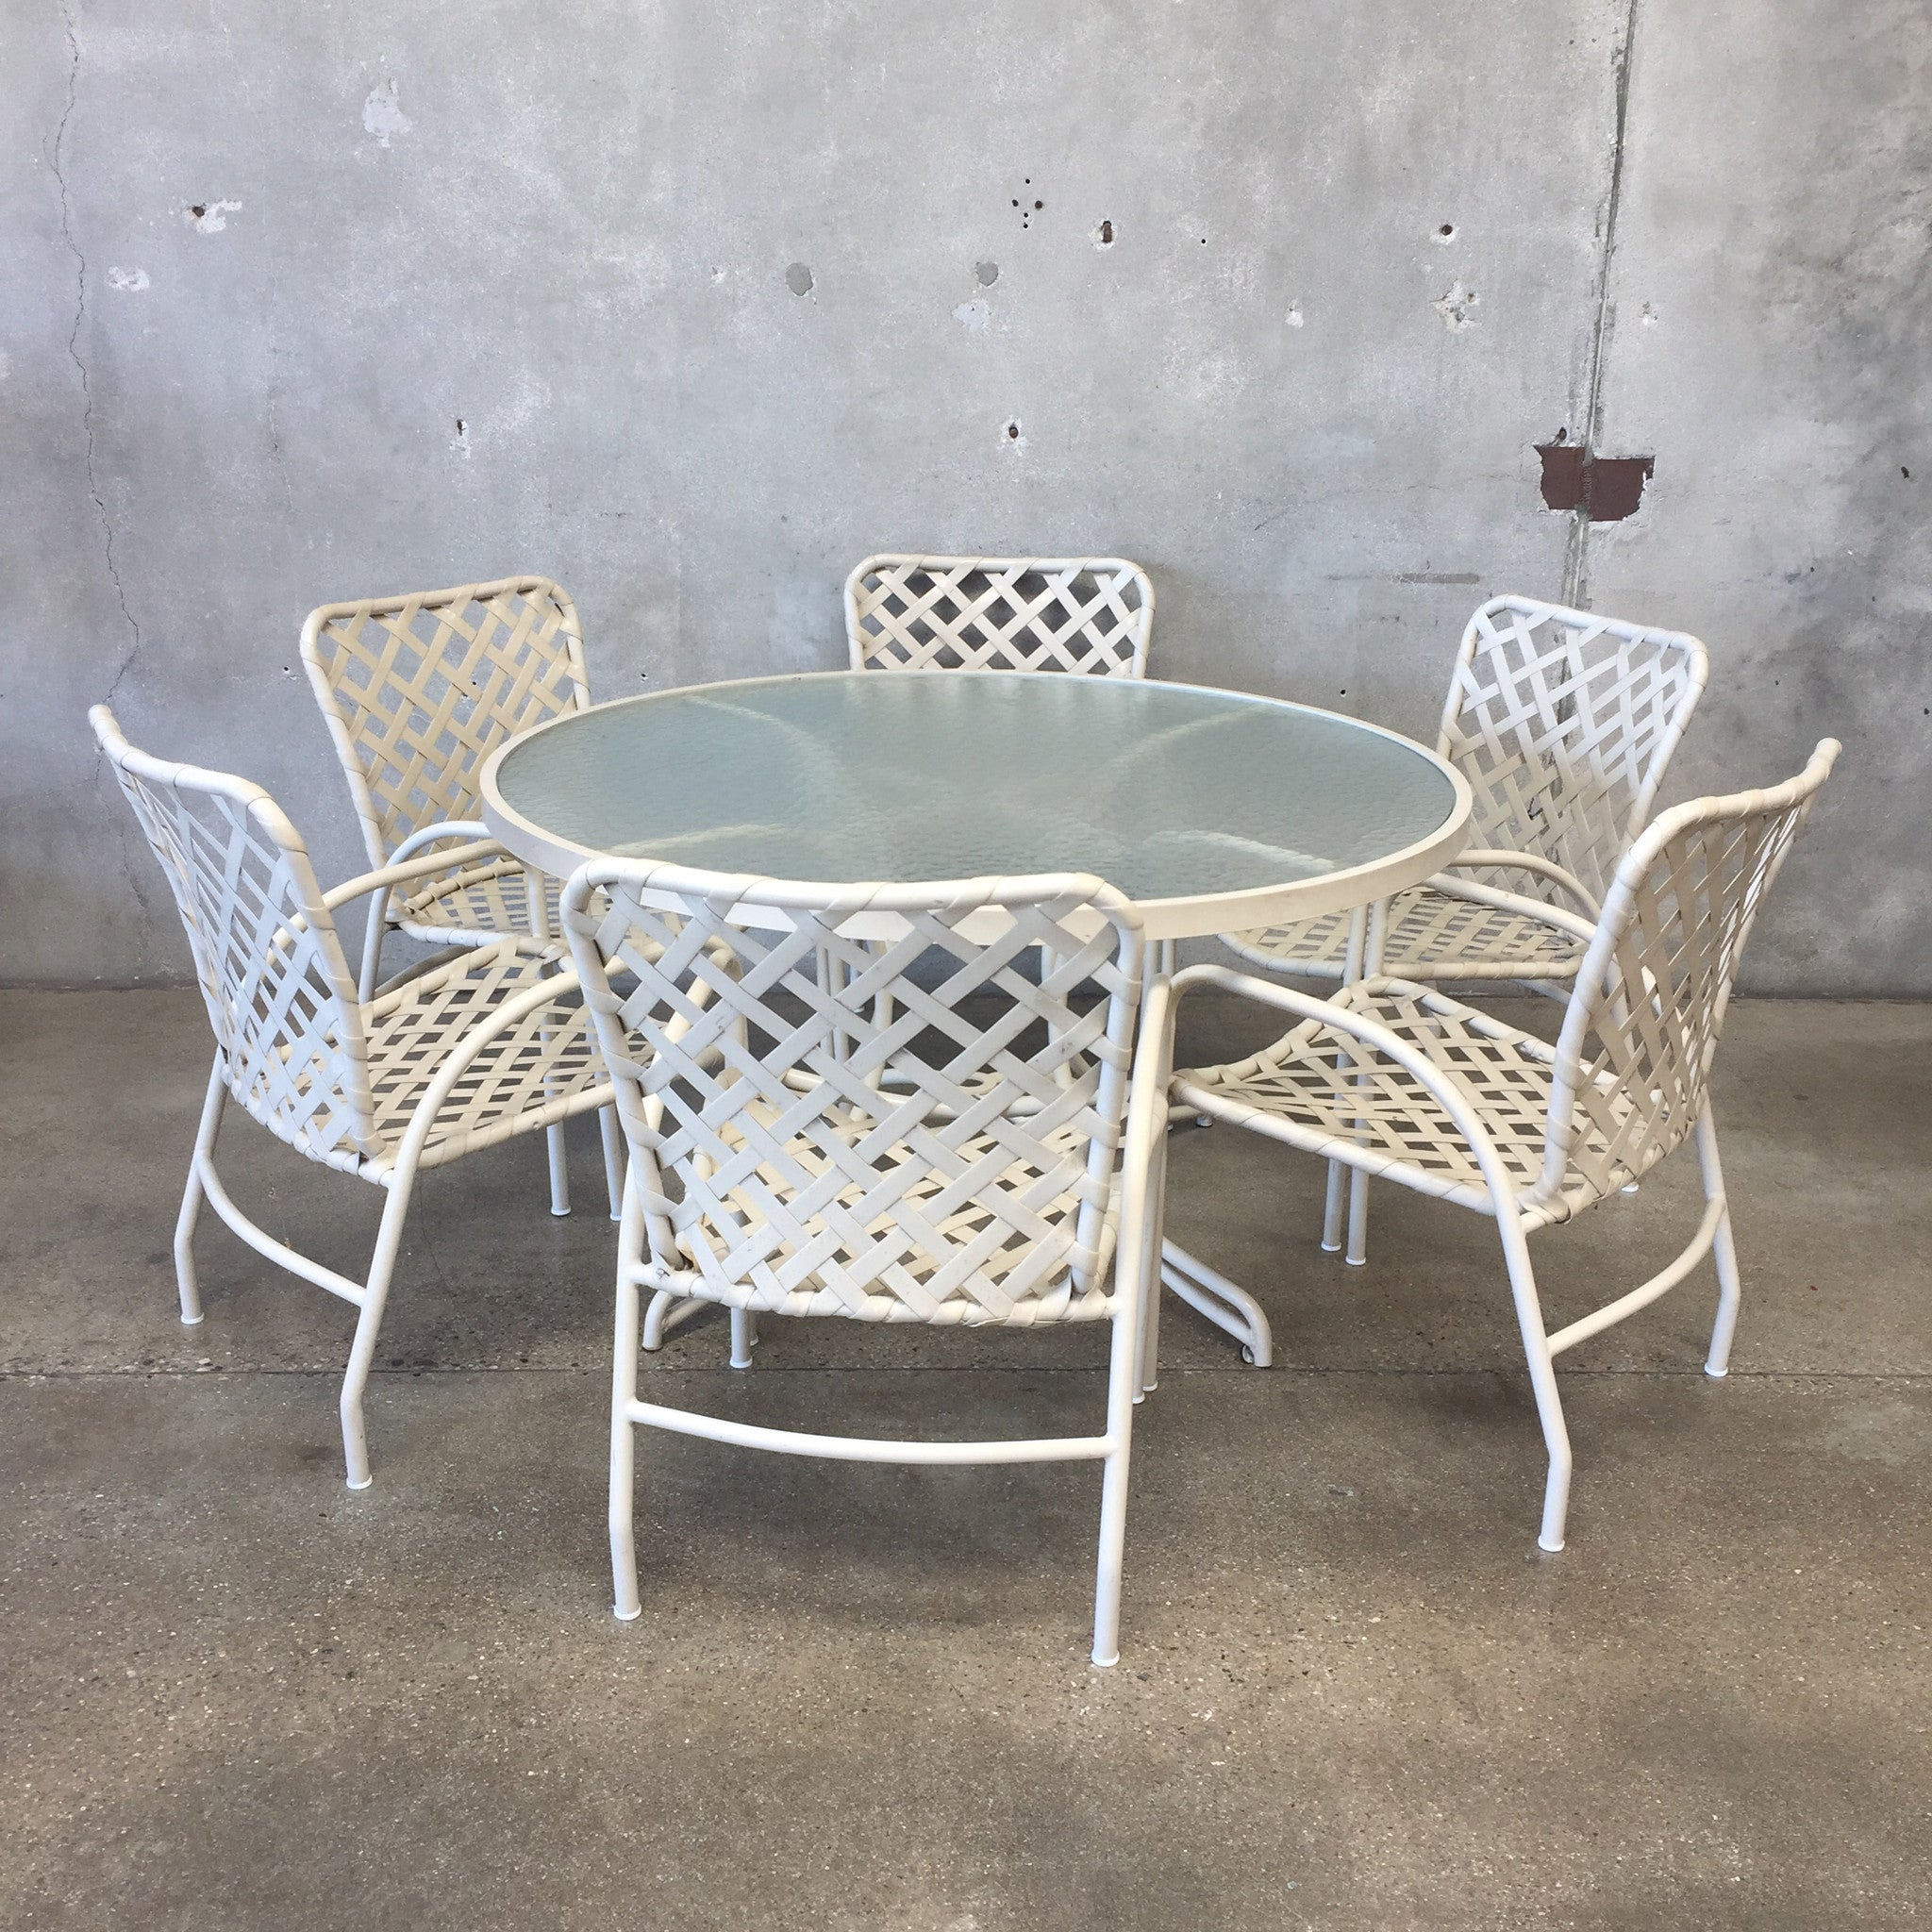 Vintage Brown Jordan Patio Dining Set ...